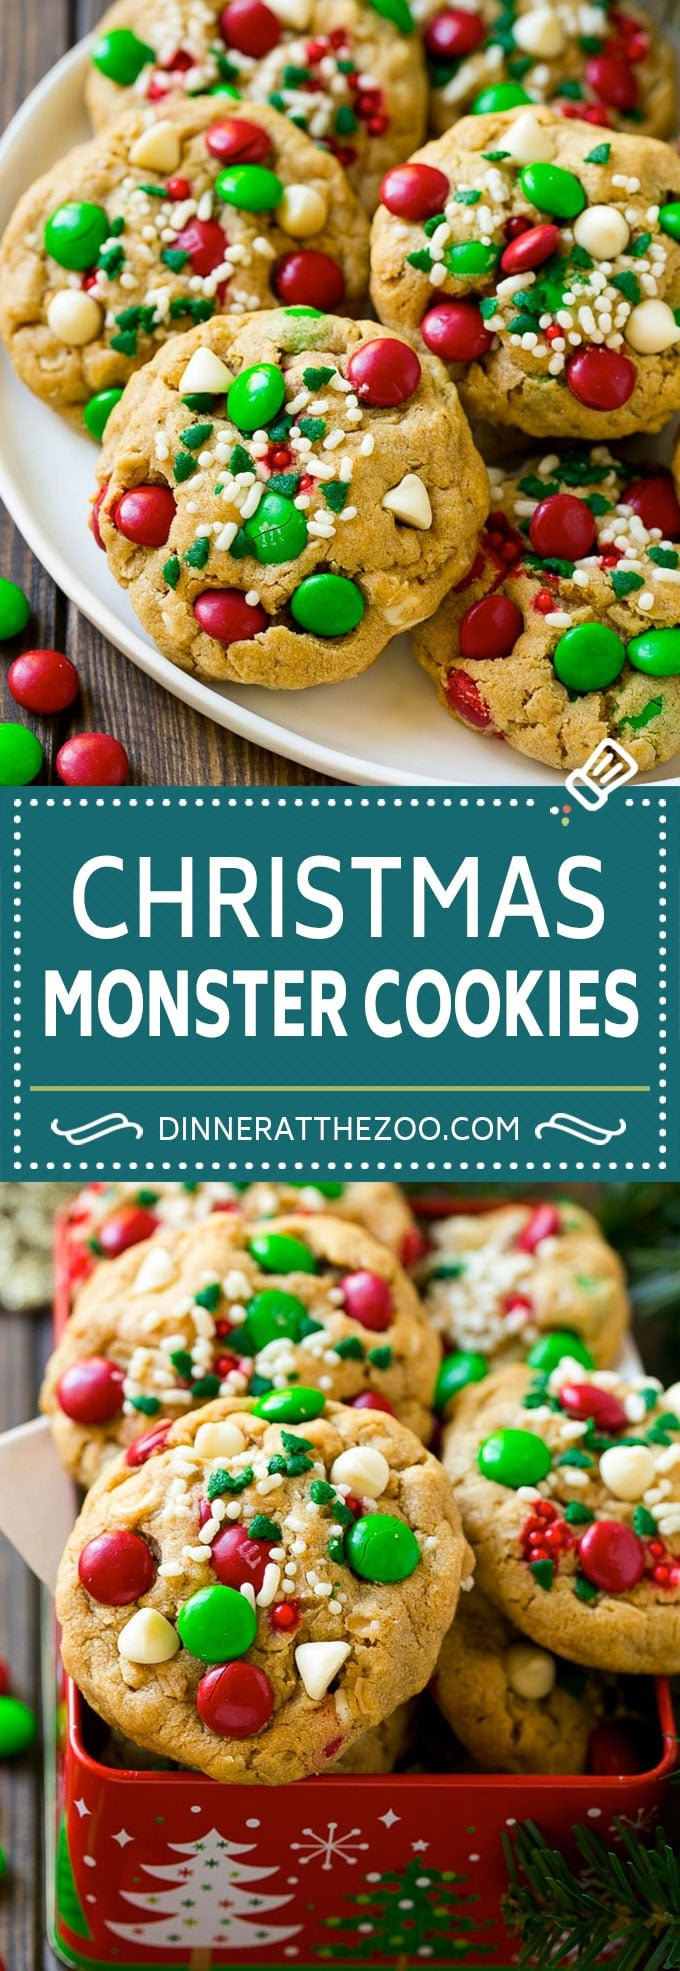 Monster Cookies Christmas Version Dinner At The Zoo